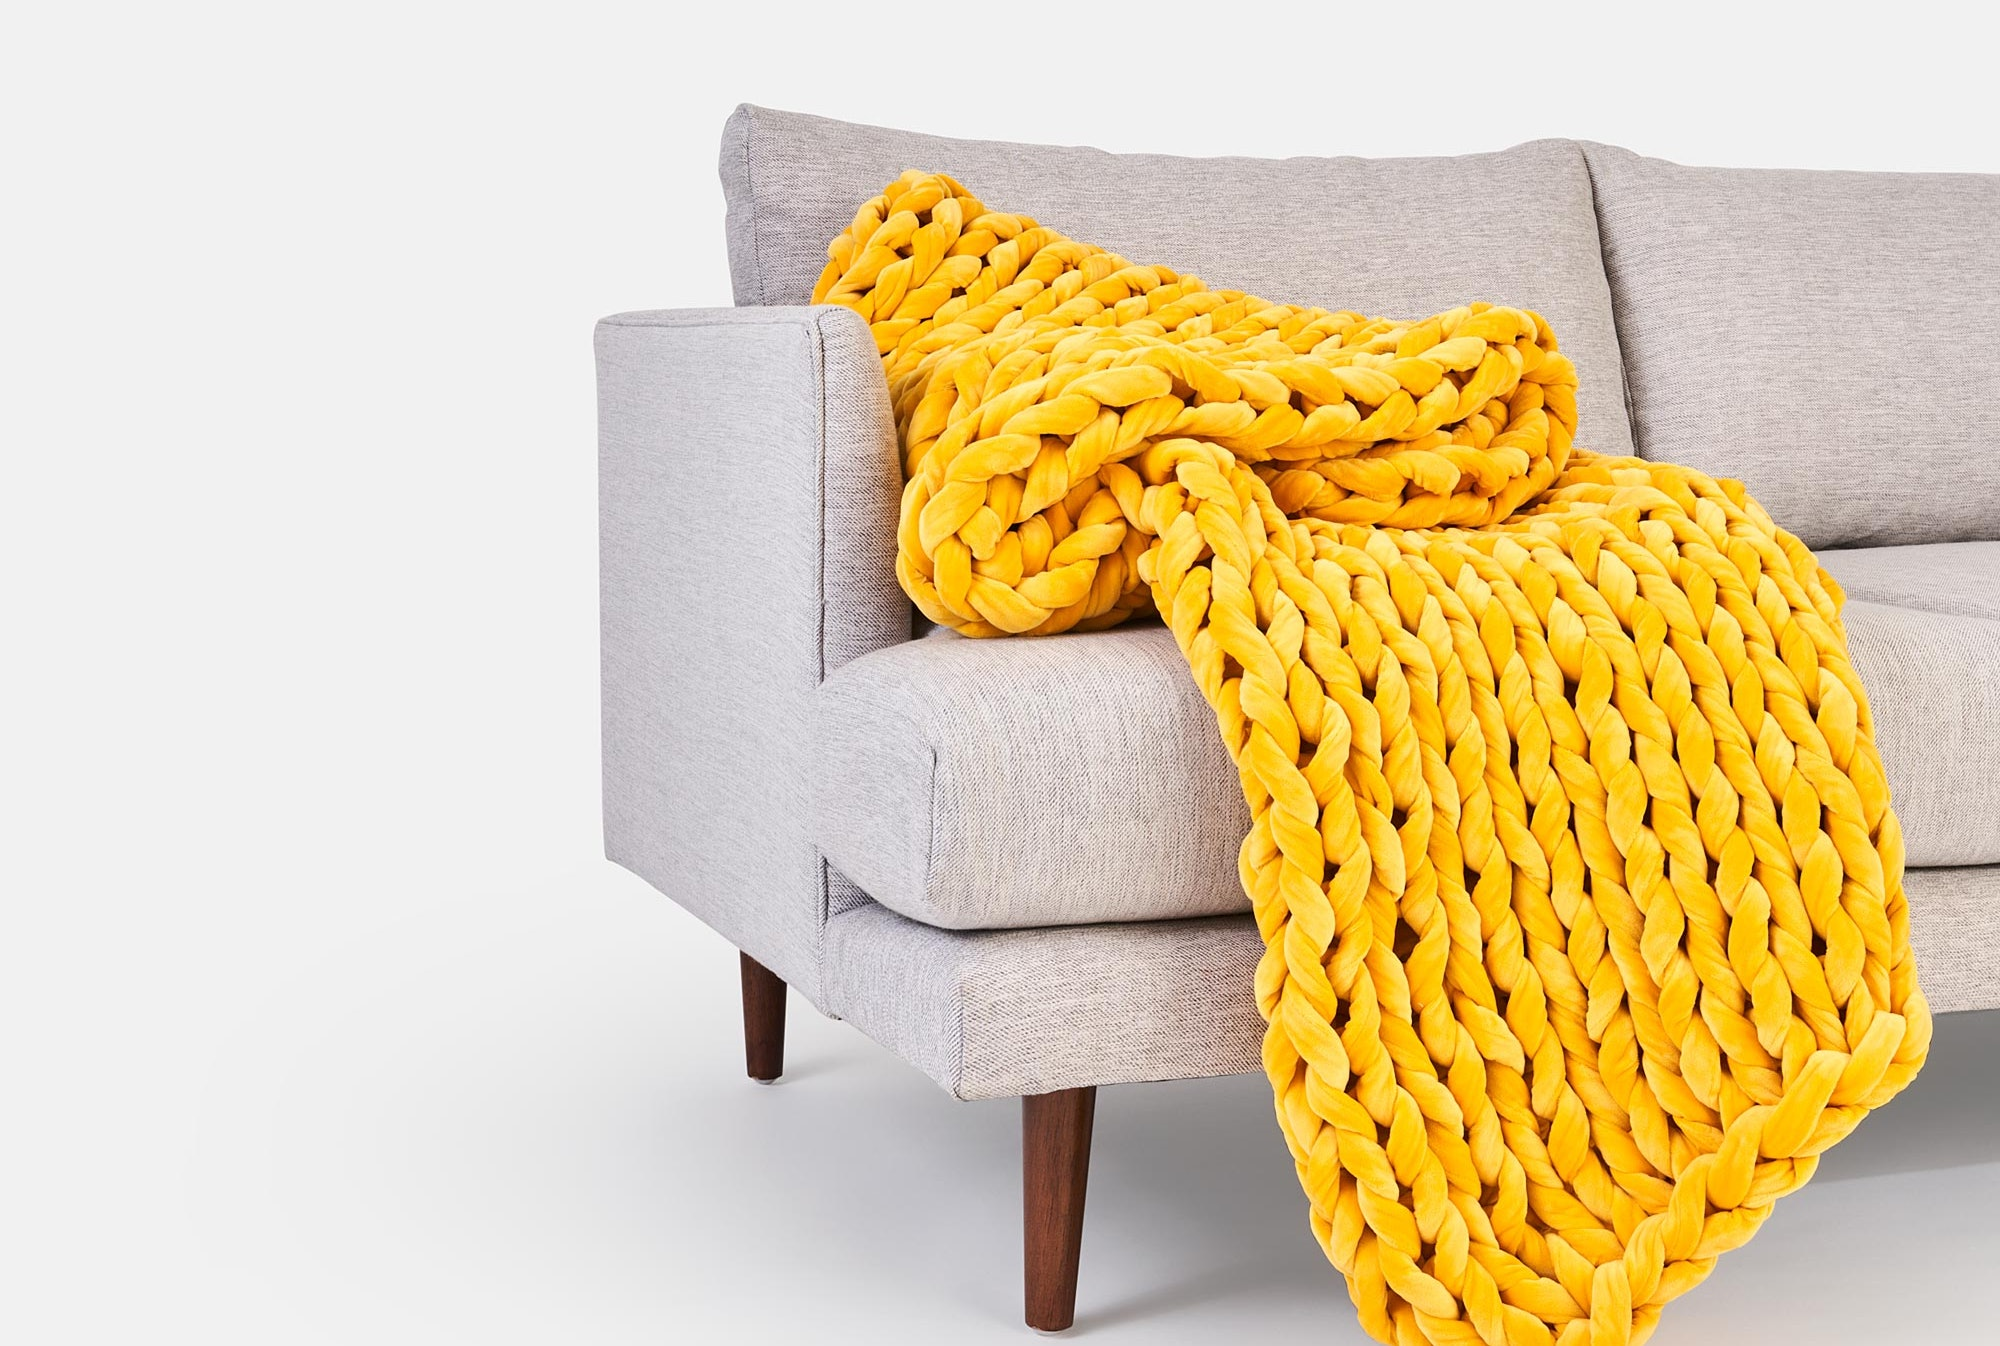 The Bearaby X West Elm Collaboration Means Chic Weighted Blankets Are Coming To Your Fave Home Decor Store